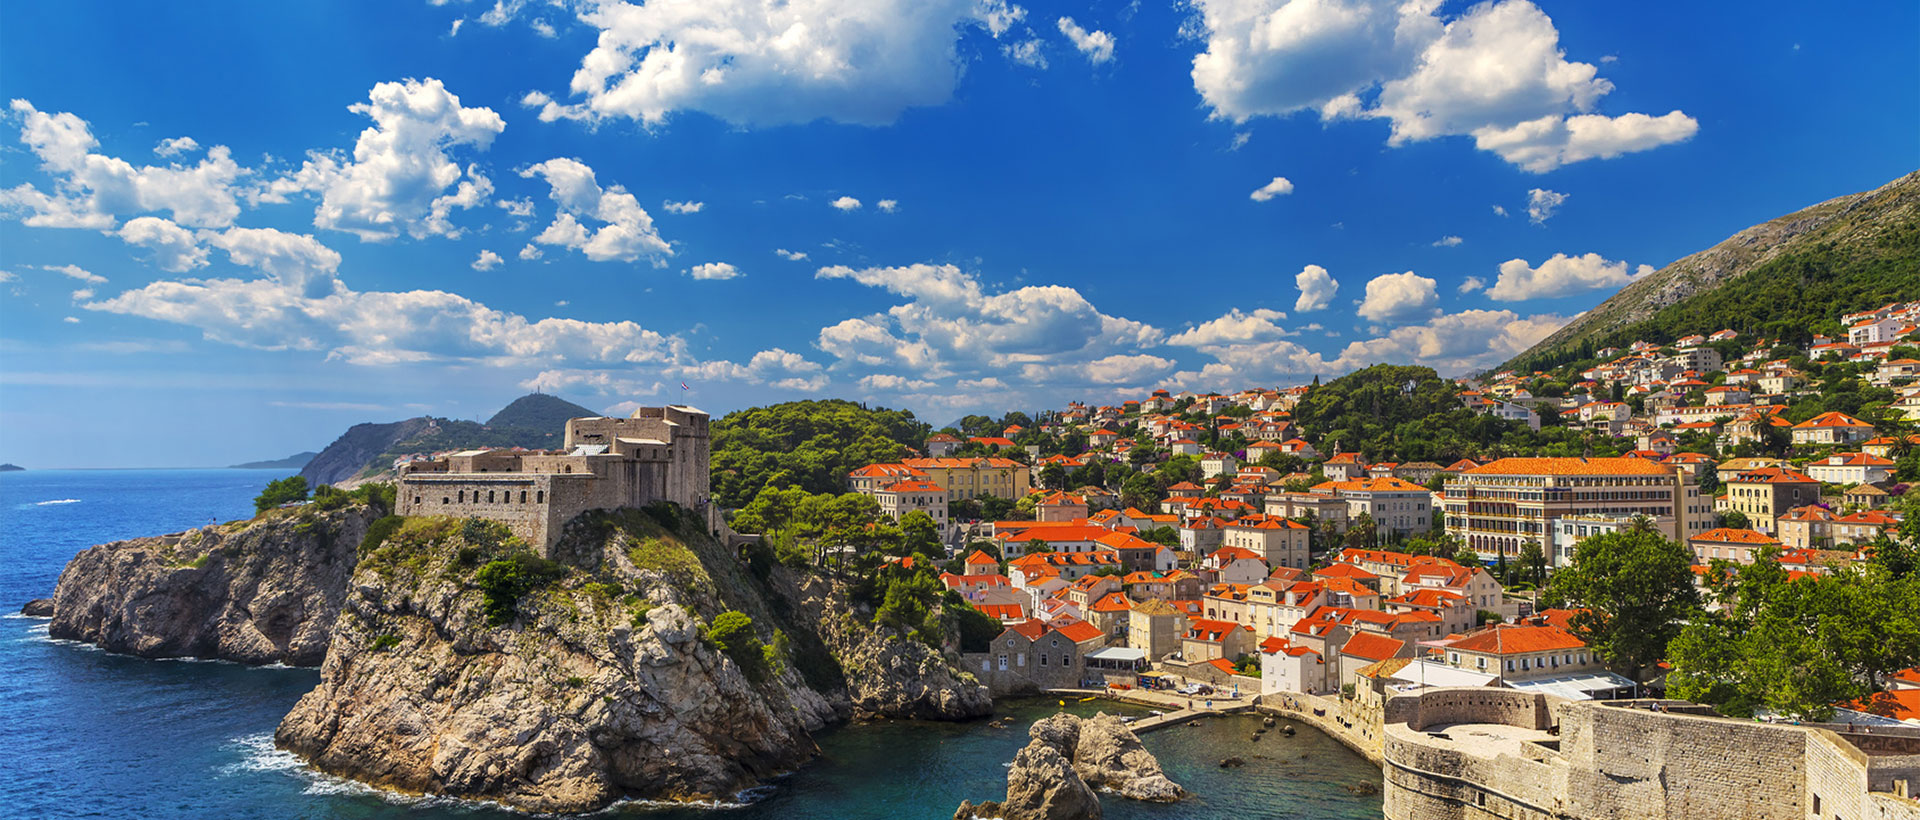 Bus To Dubrovnik From 1 99 Flixbus The New Way To Travel